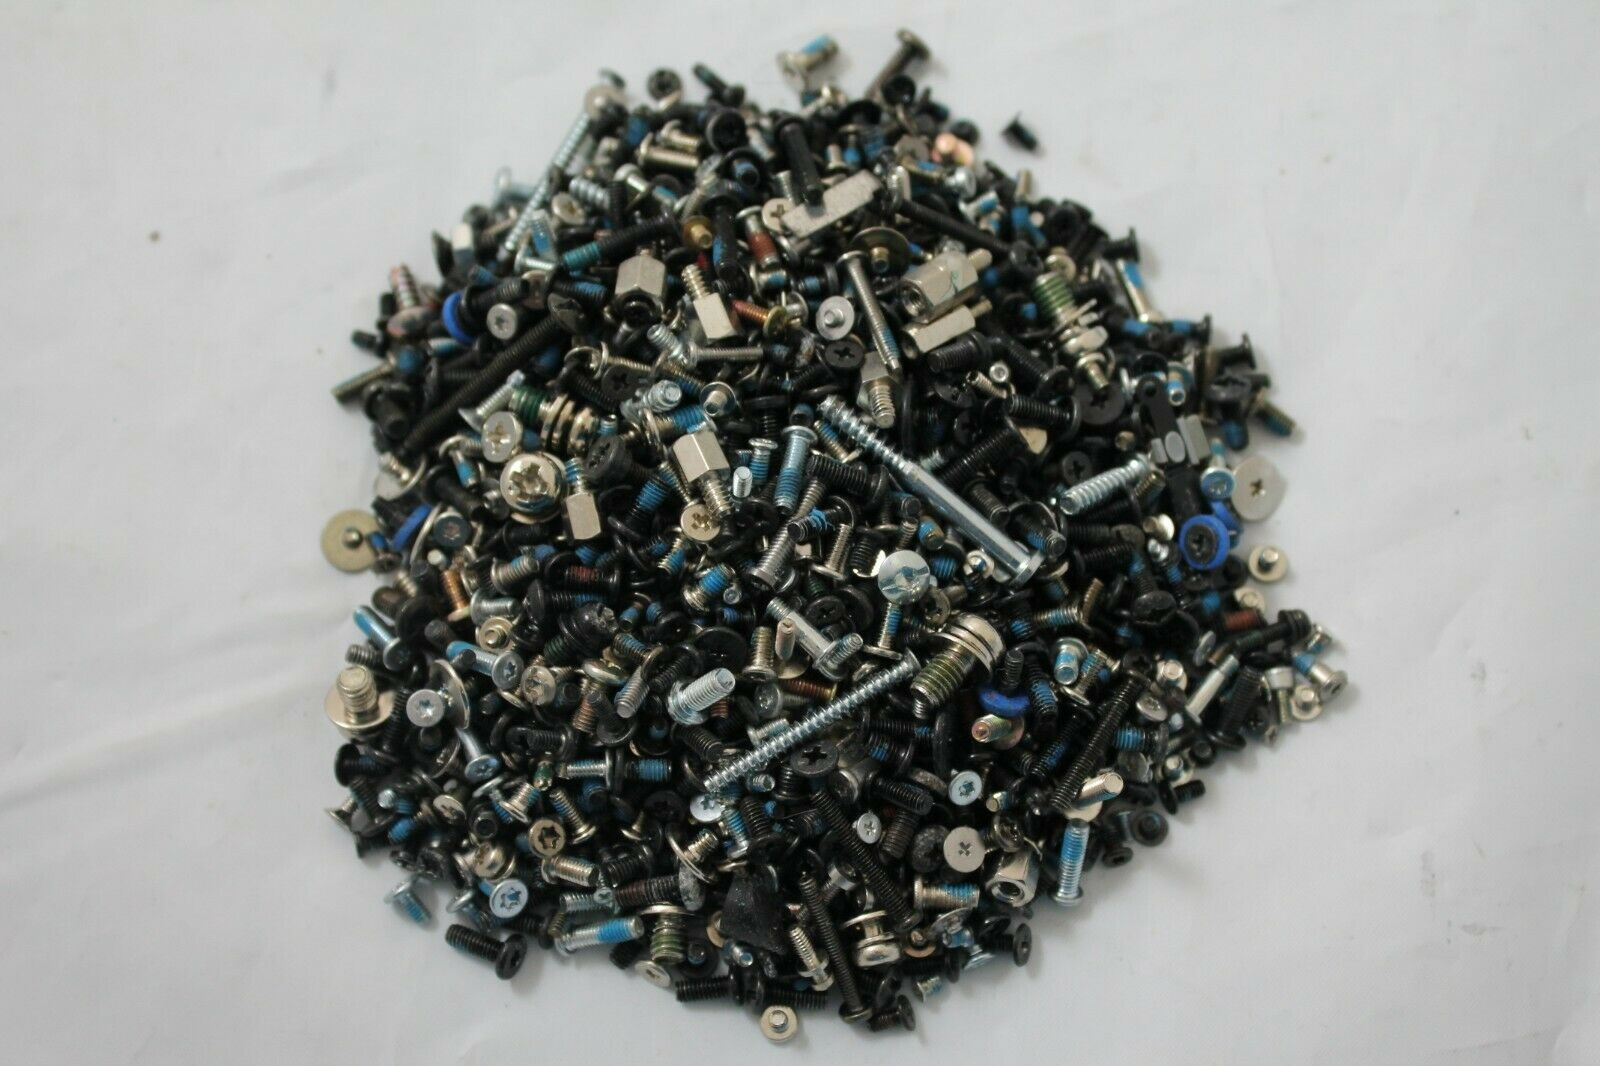 1 Pound / 1 LB Of Mixed Laptop Notebook Screws Set Assembly HP IBM Dell Toshiba